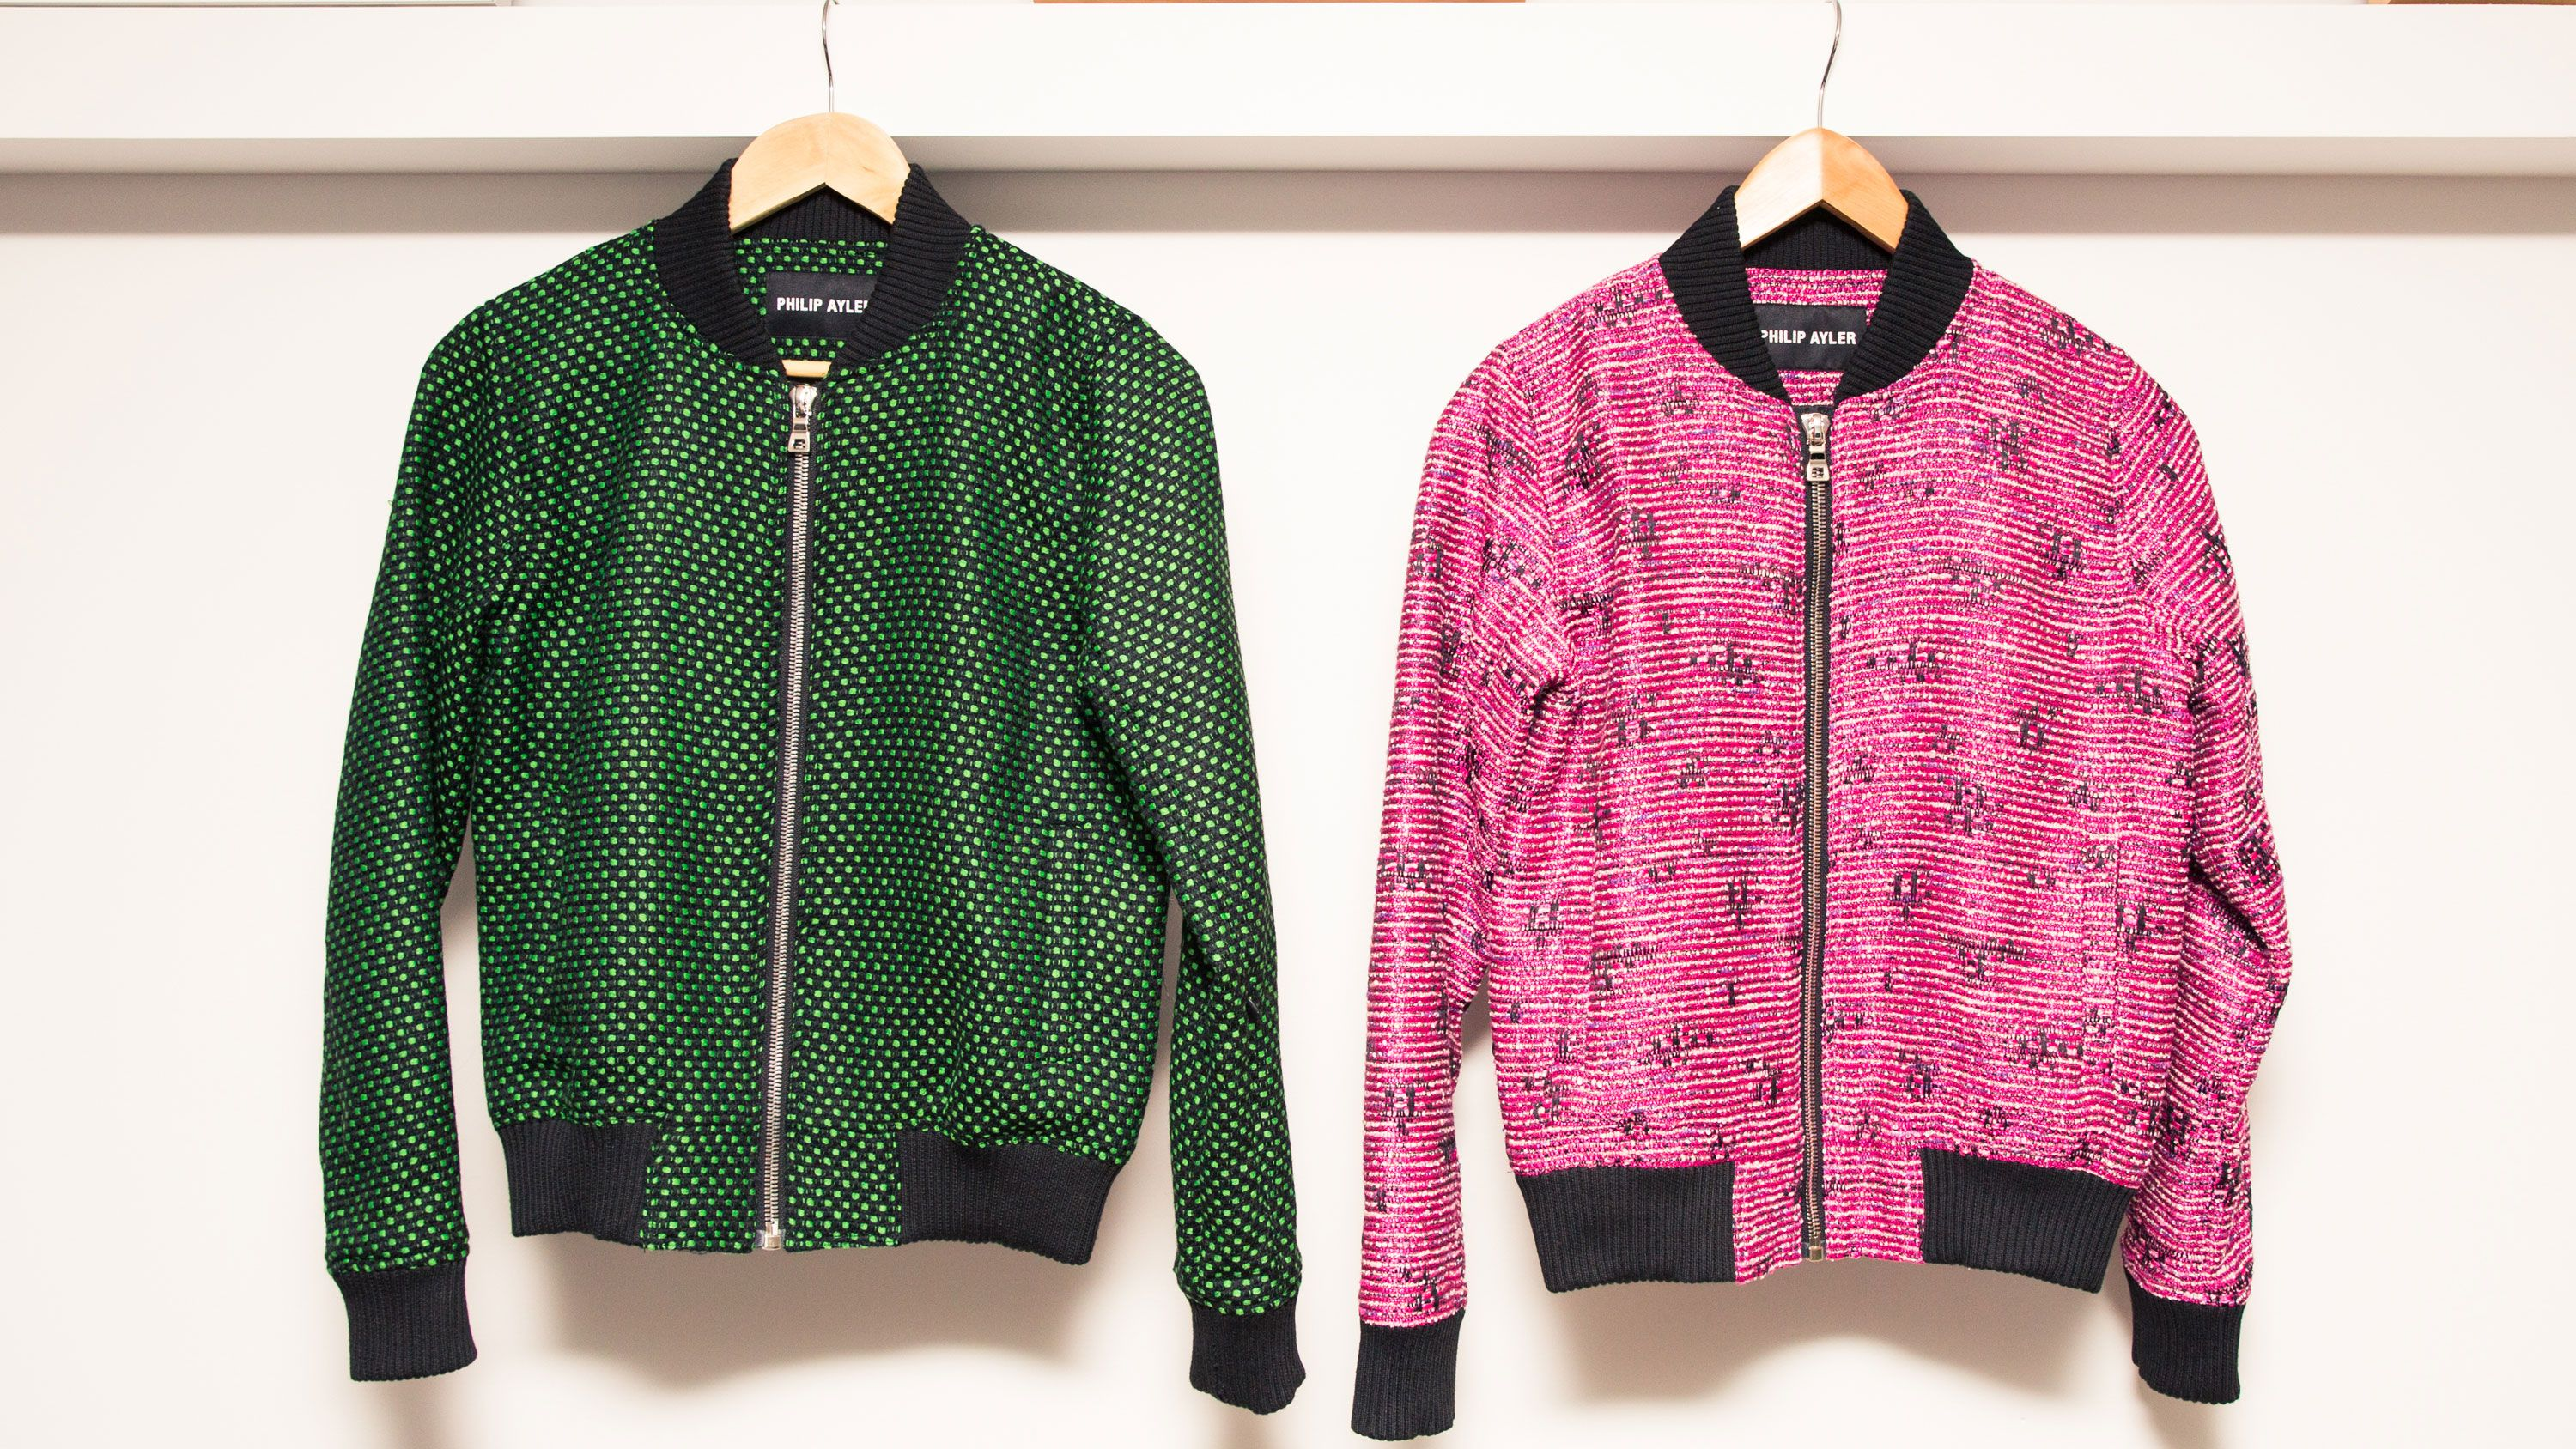 The Guy Designing This Season's Must-Have Bomber Jacket